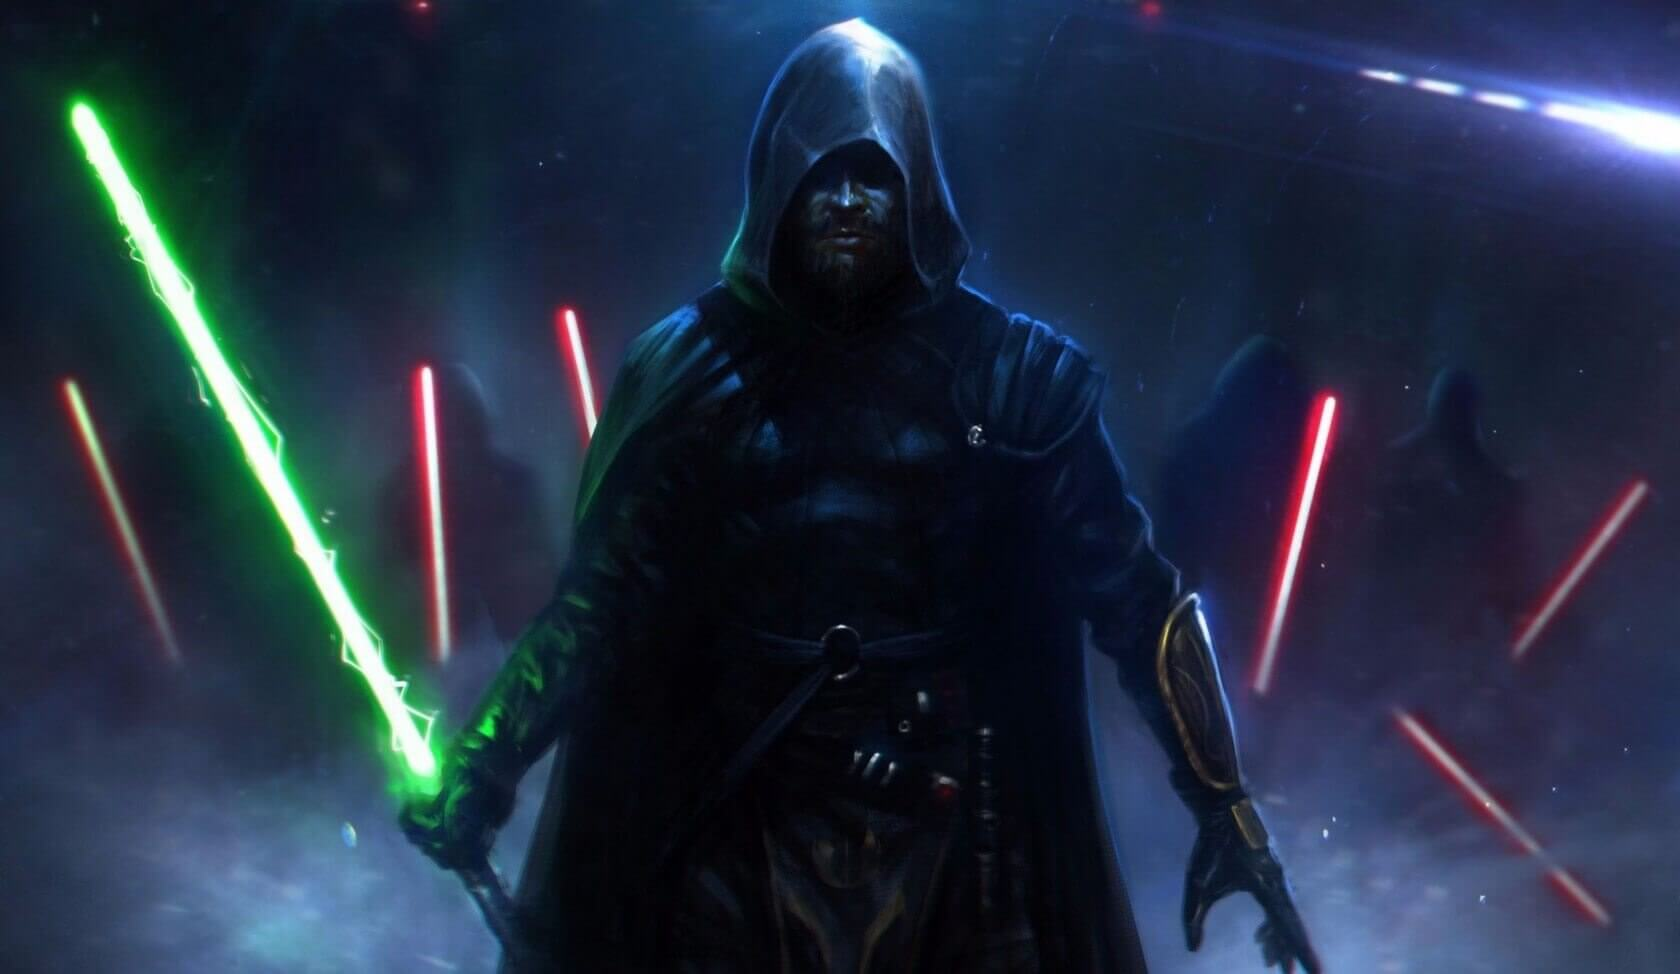 Jedi: Fallen Order will be revealed at Star Wars Celebration in April